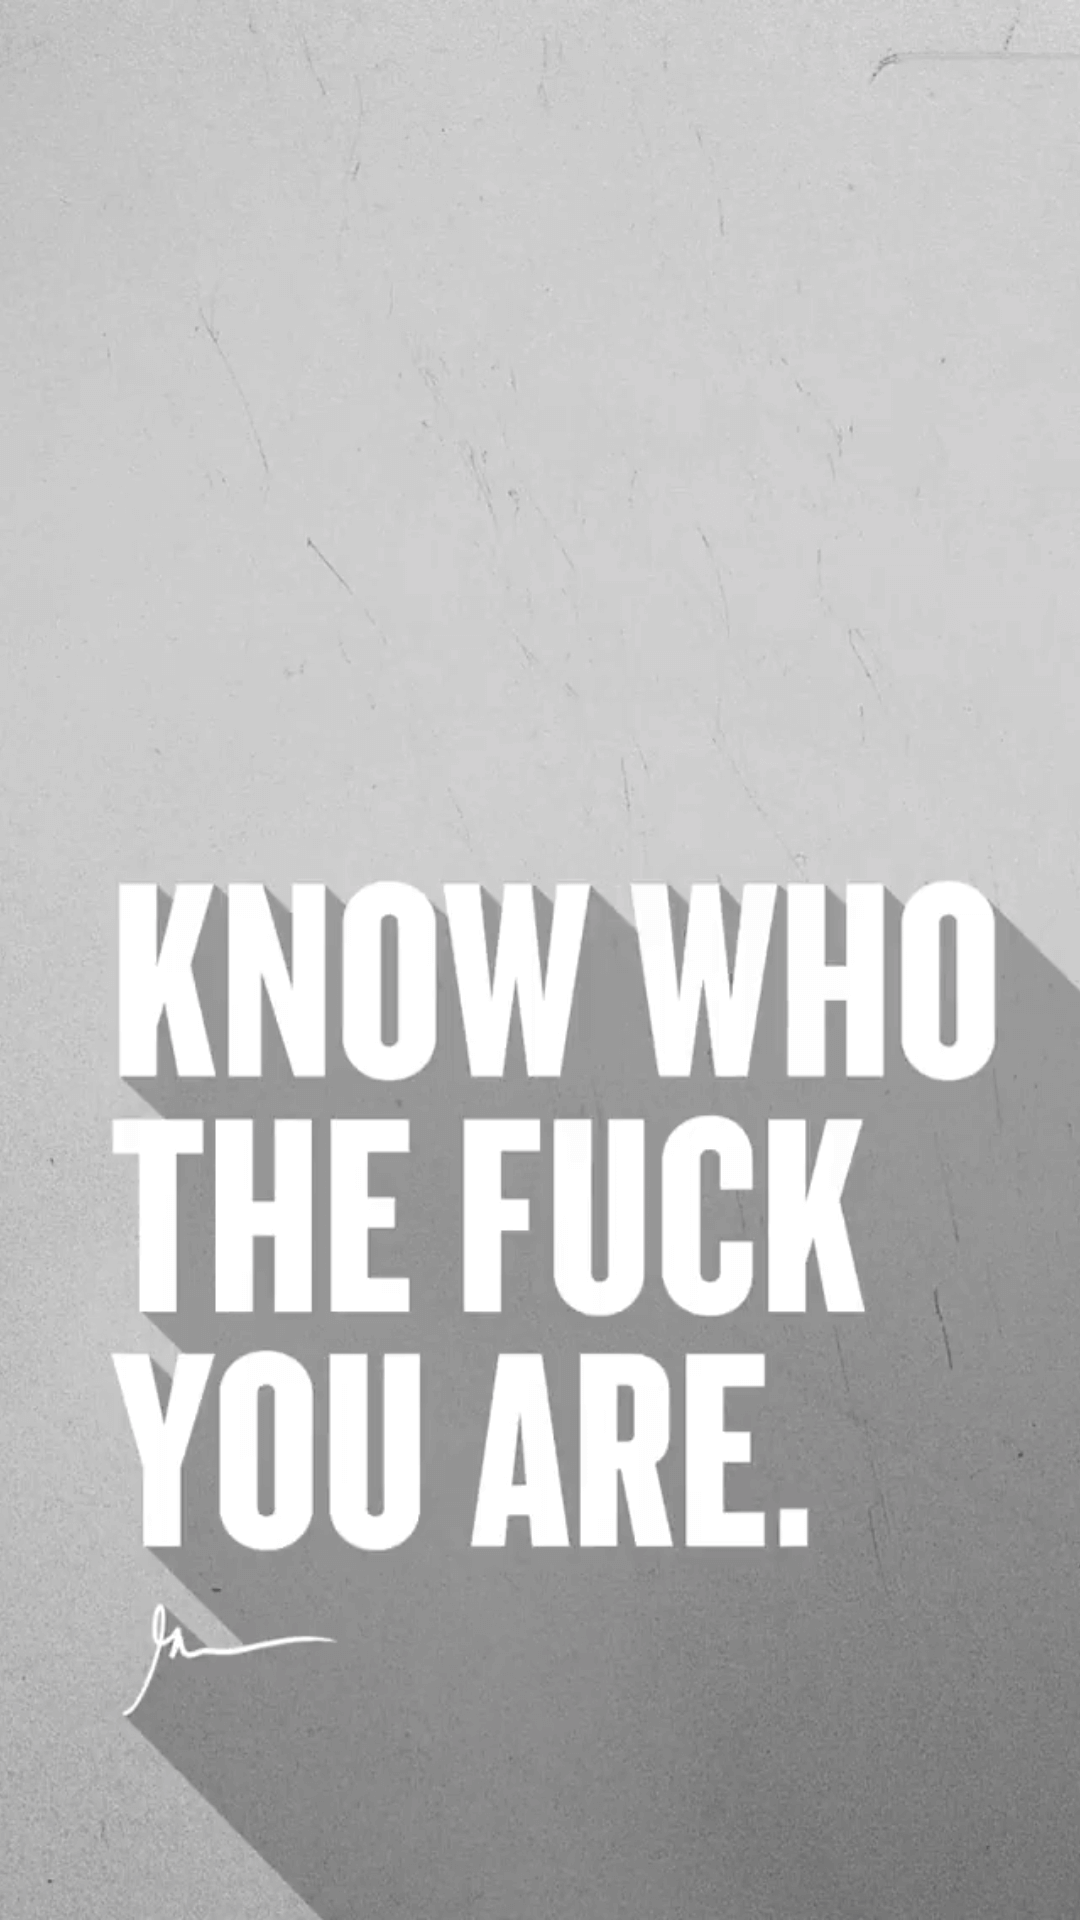 Know Who The Fuck You Are Garyveewallpapers.com